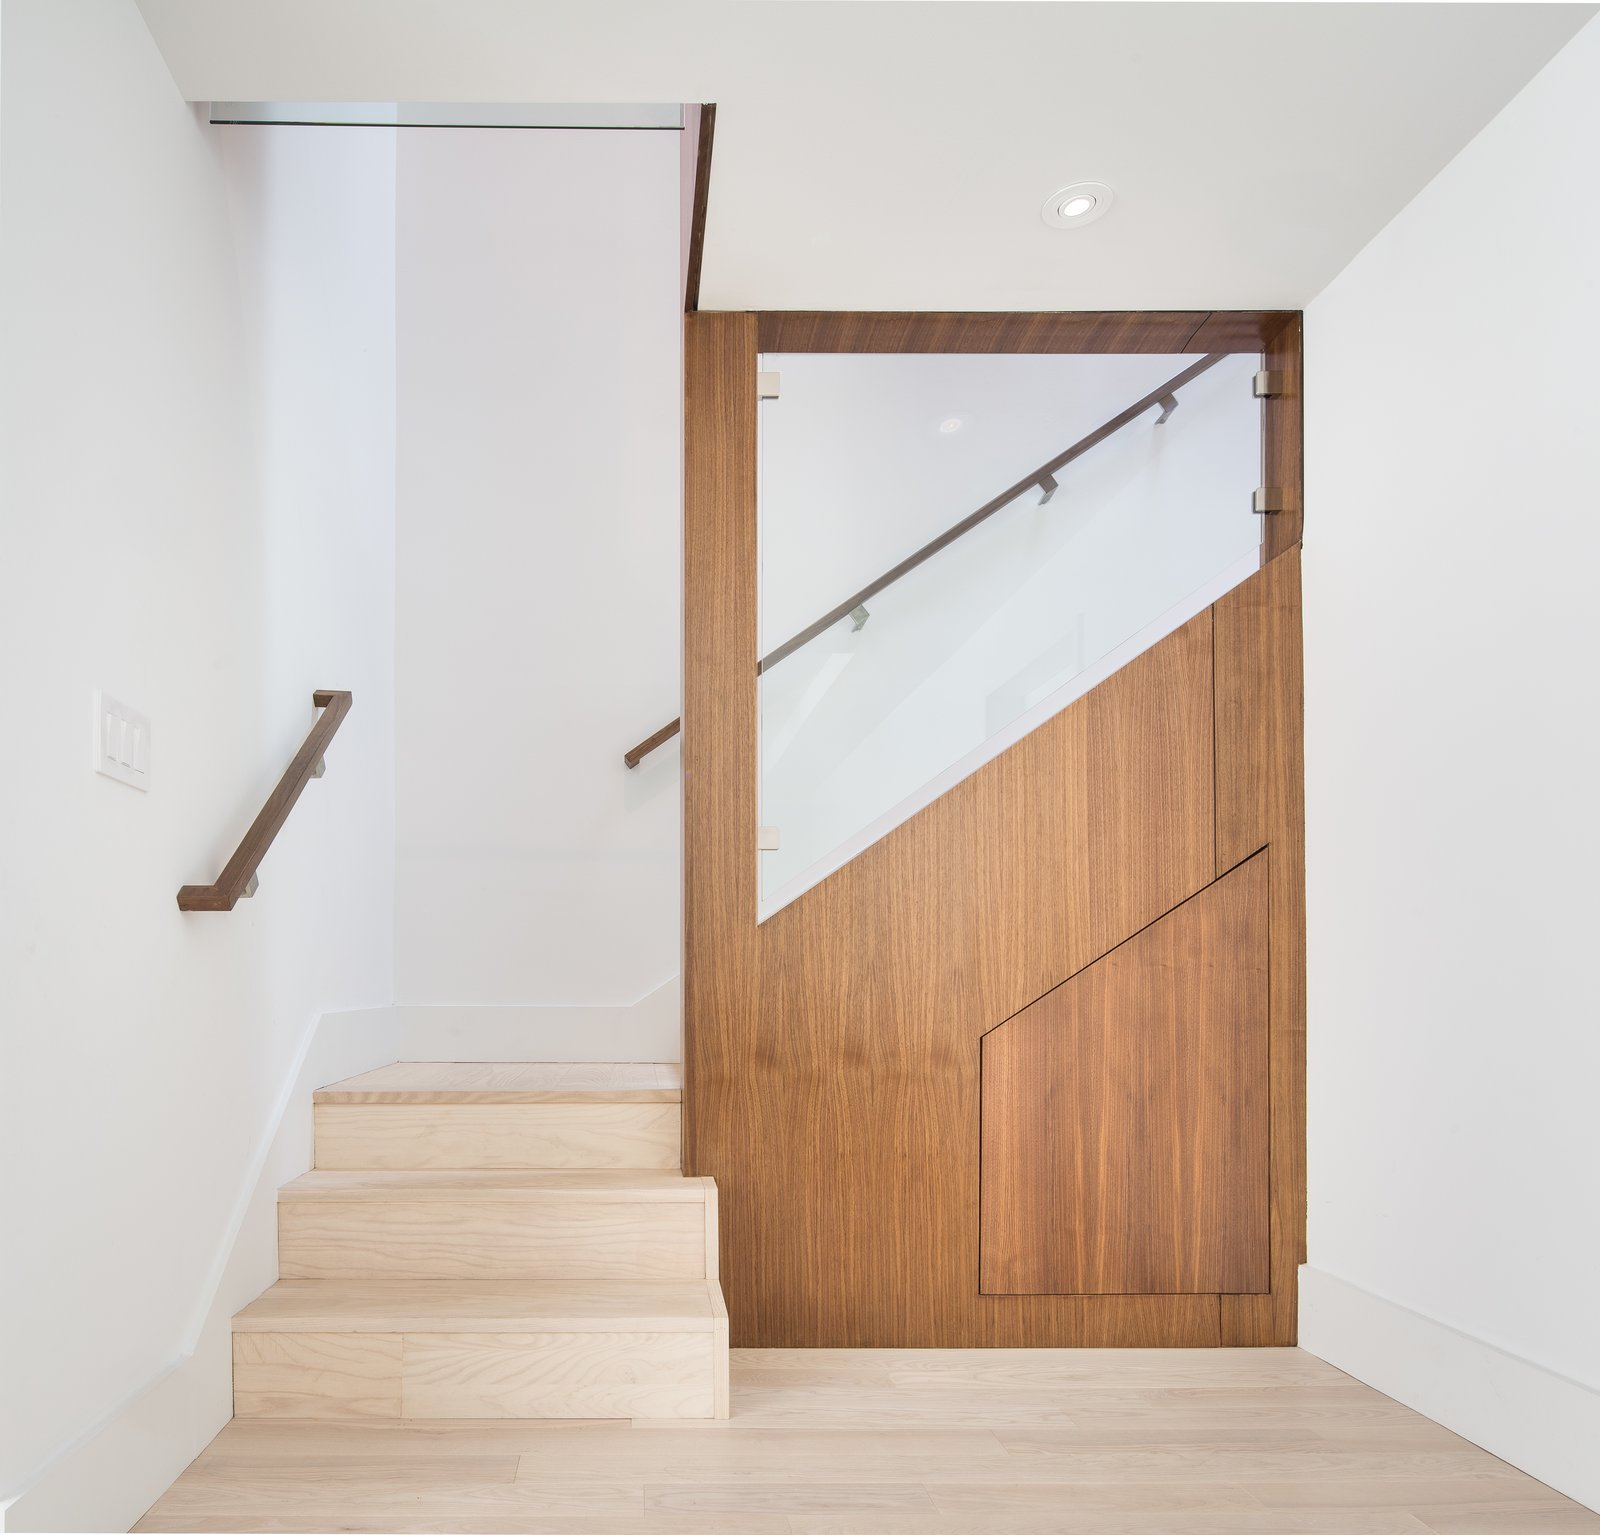 Back Yard, Glass, Hardscapes, Small, Horizontal, Wood, Engineered Quartz, Wood, White, Light Hardwood, Ceramic Tile, Ceiling, Recessed, Accent, Refrigerator, Range, Range Hood, Dishwasher, Undermount, and Staircase  Best Staircase Accent Light Hardwood Photos from 30th Street Residence